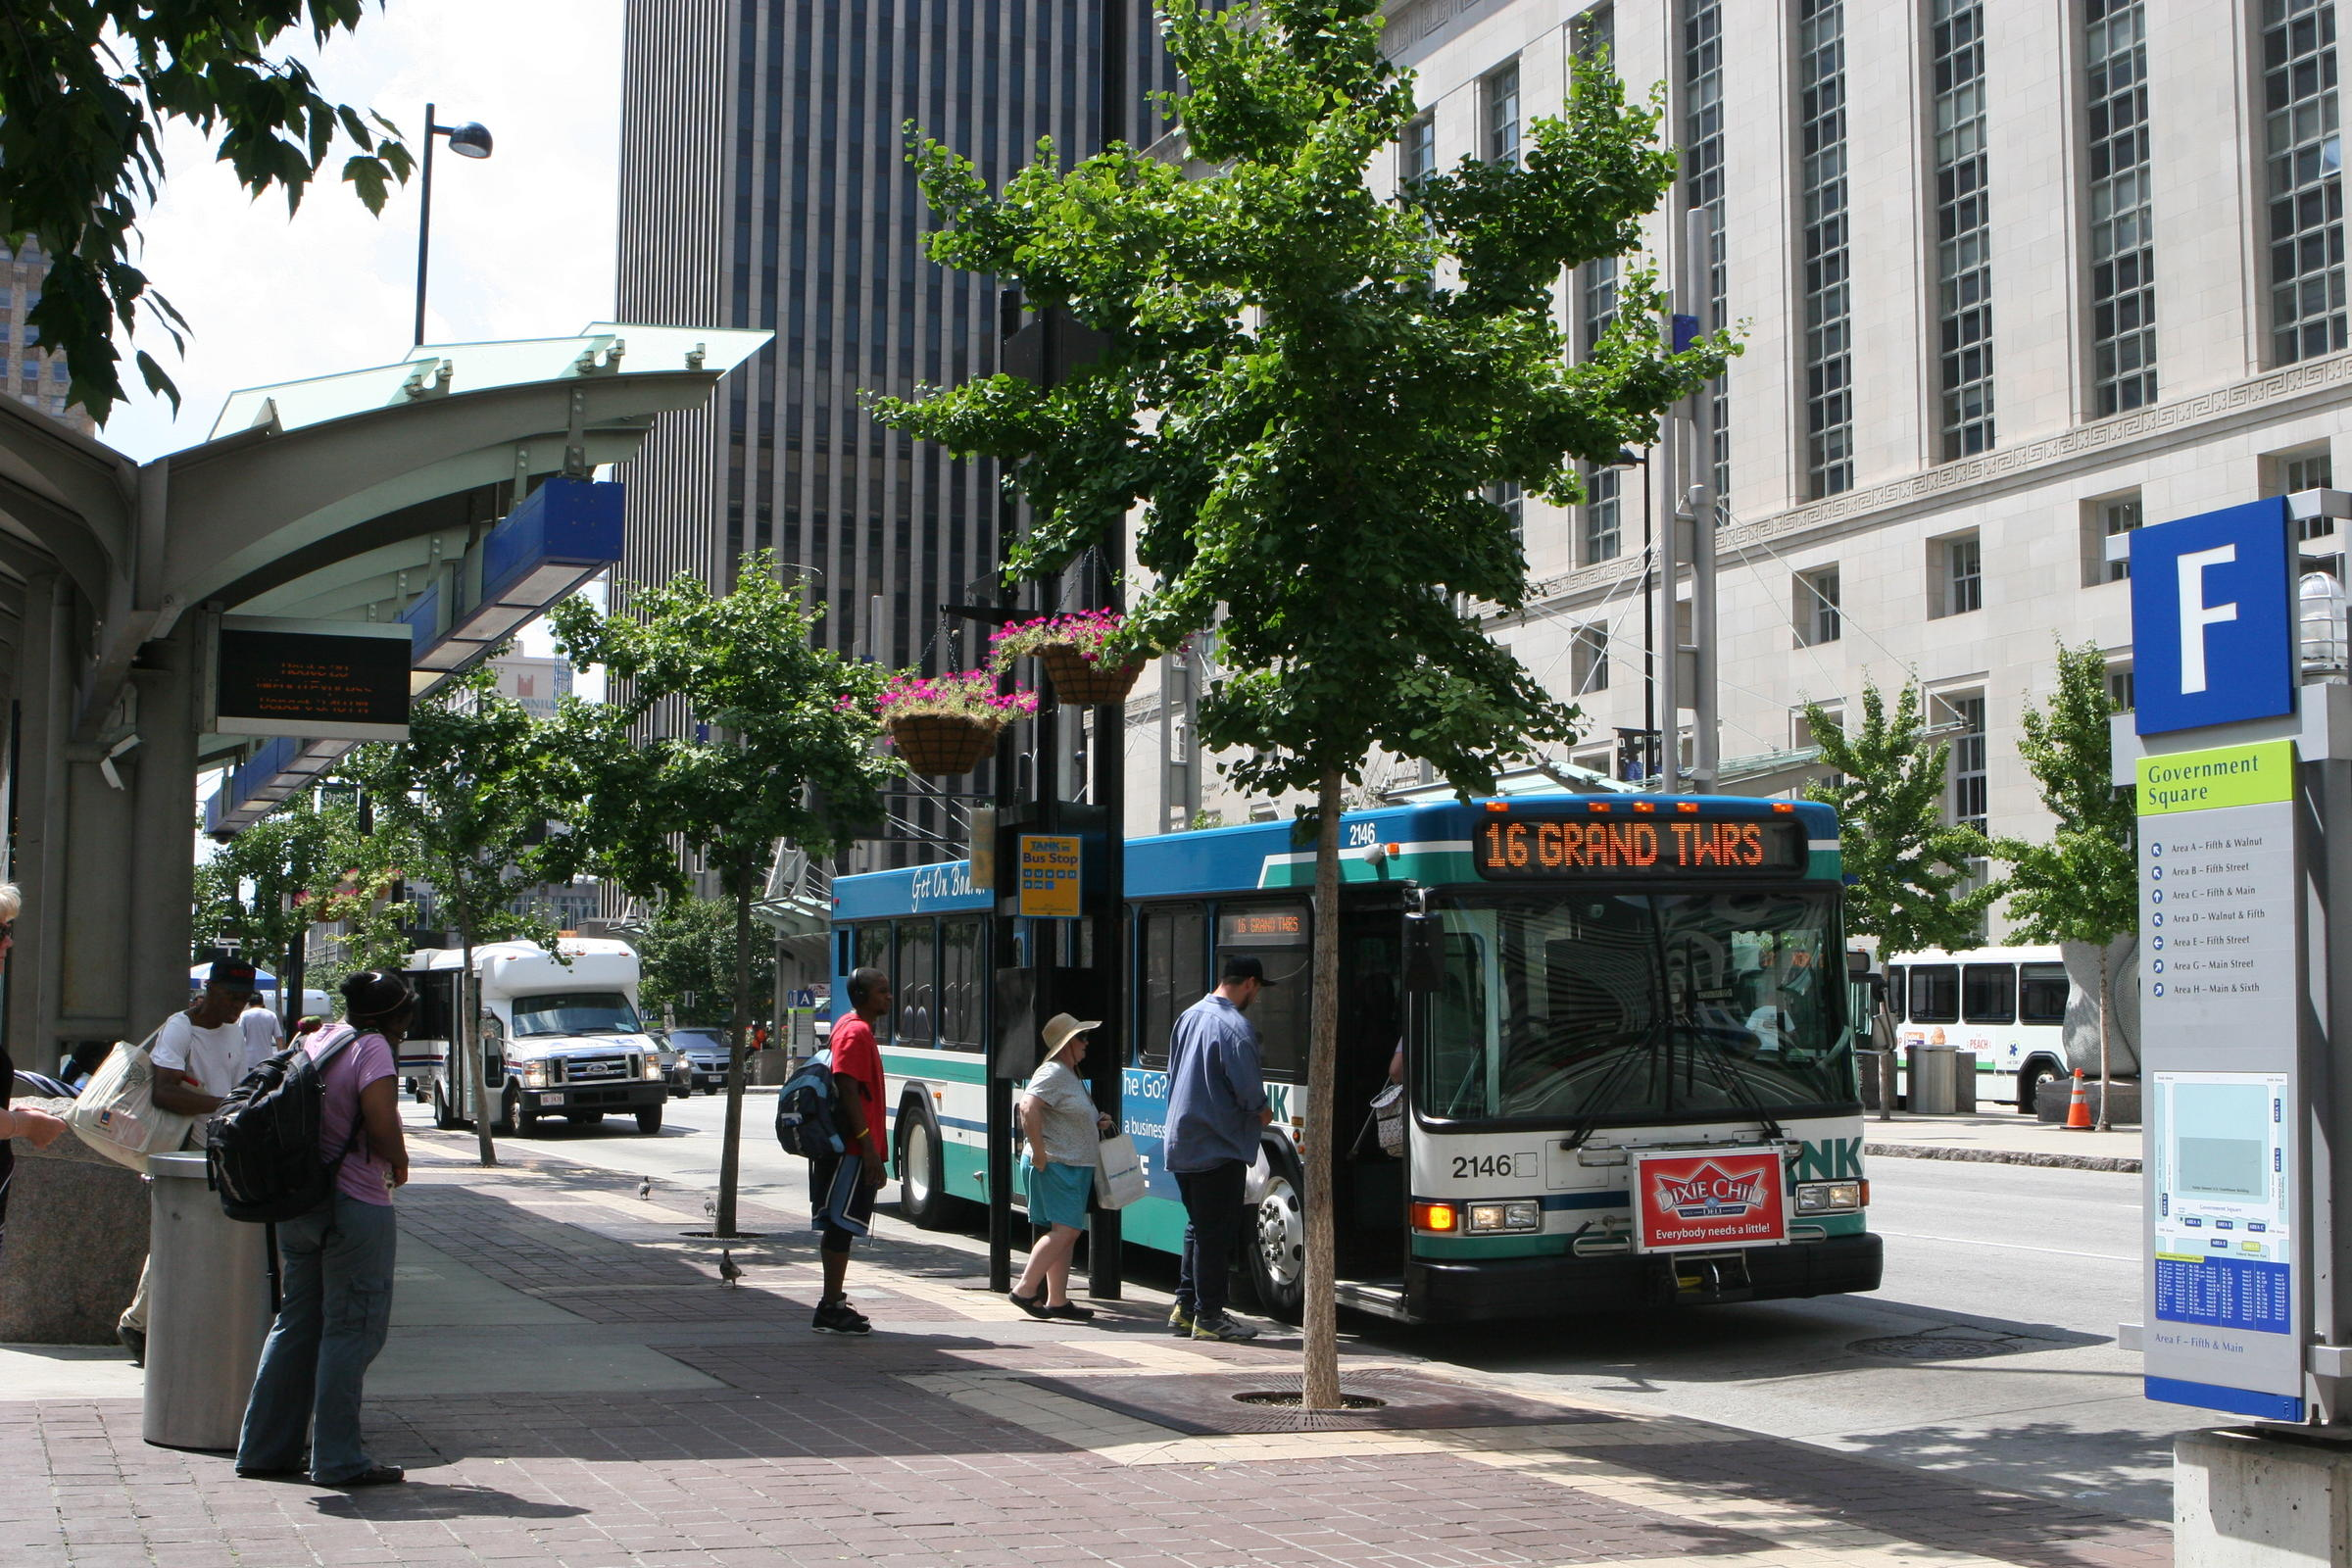 Metro Stored Value Fare Card Works In All Zones Wvxu